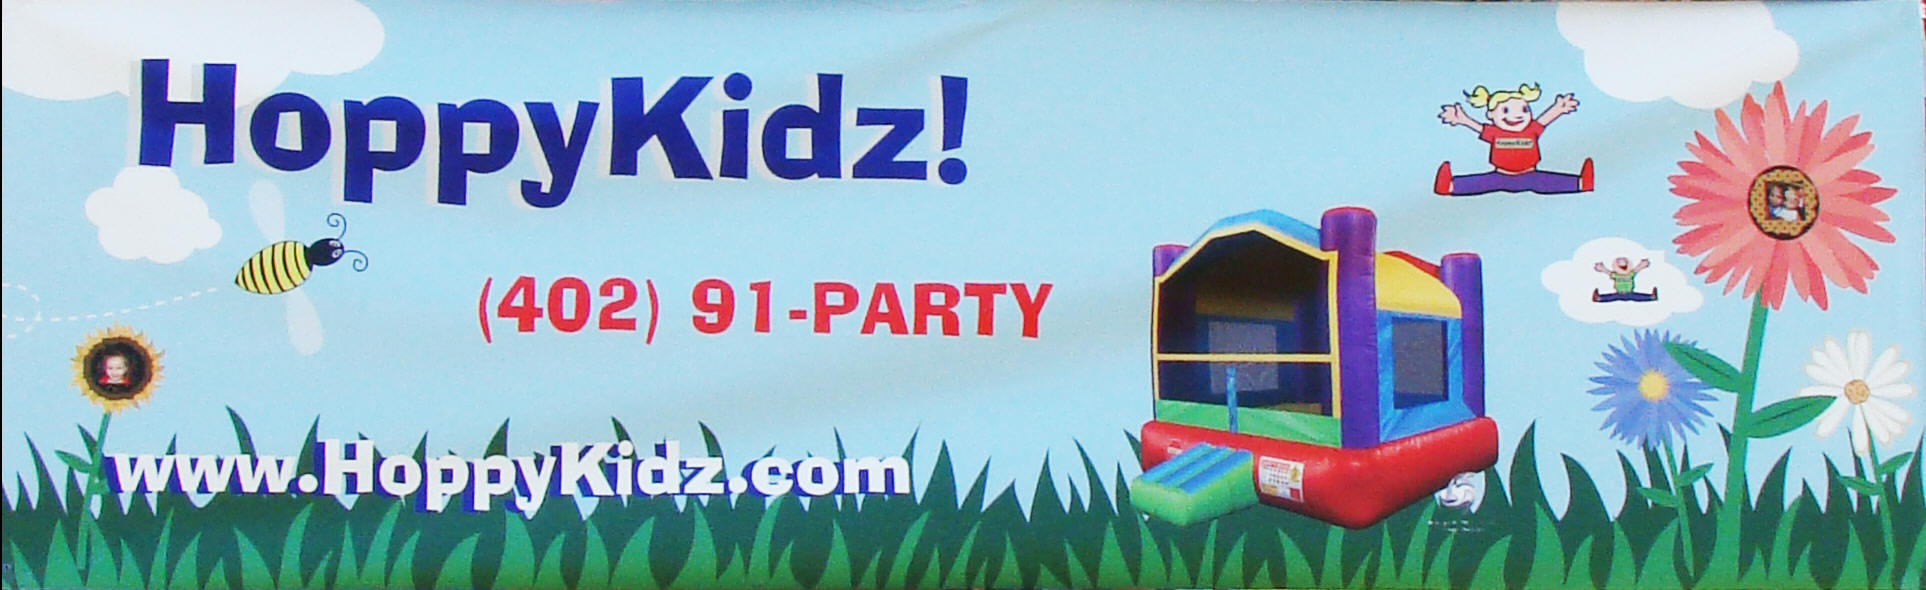 HoppyKidz rents bouncy castles, jumpy houses, moonwalks, pony hops, and more throughout the Omaha Metro area